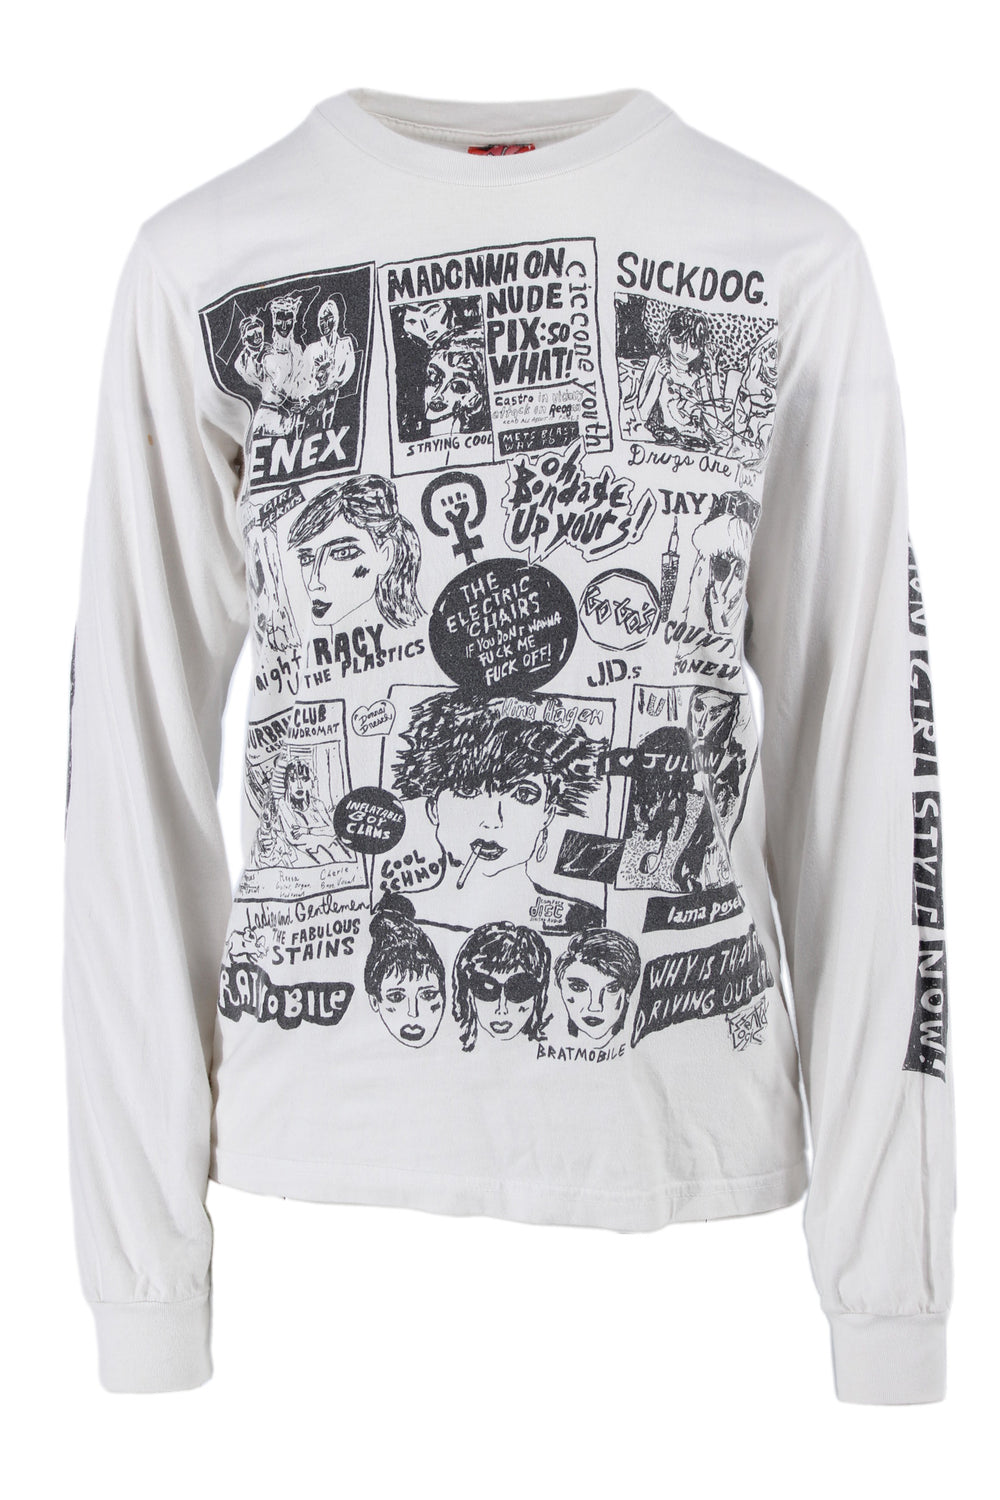 wacky wacko by seth bogart white with black graphic long sleeve tee.